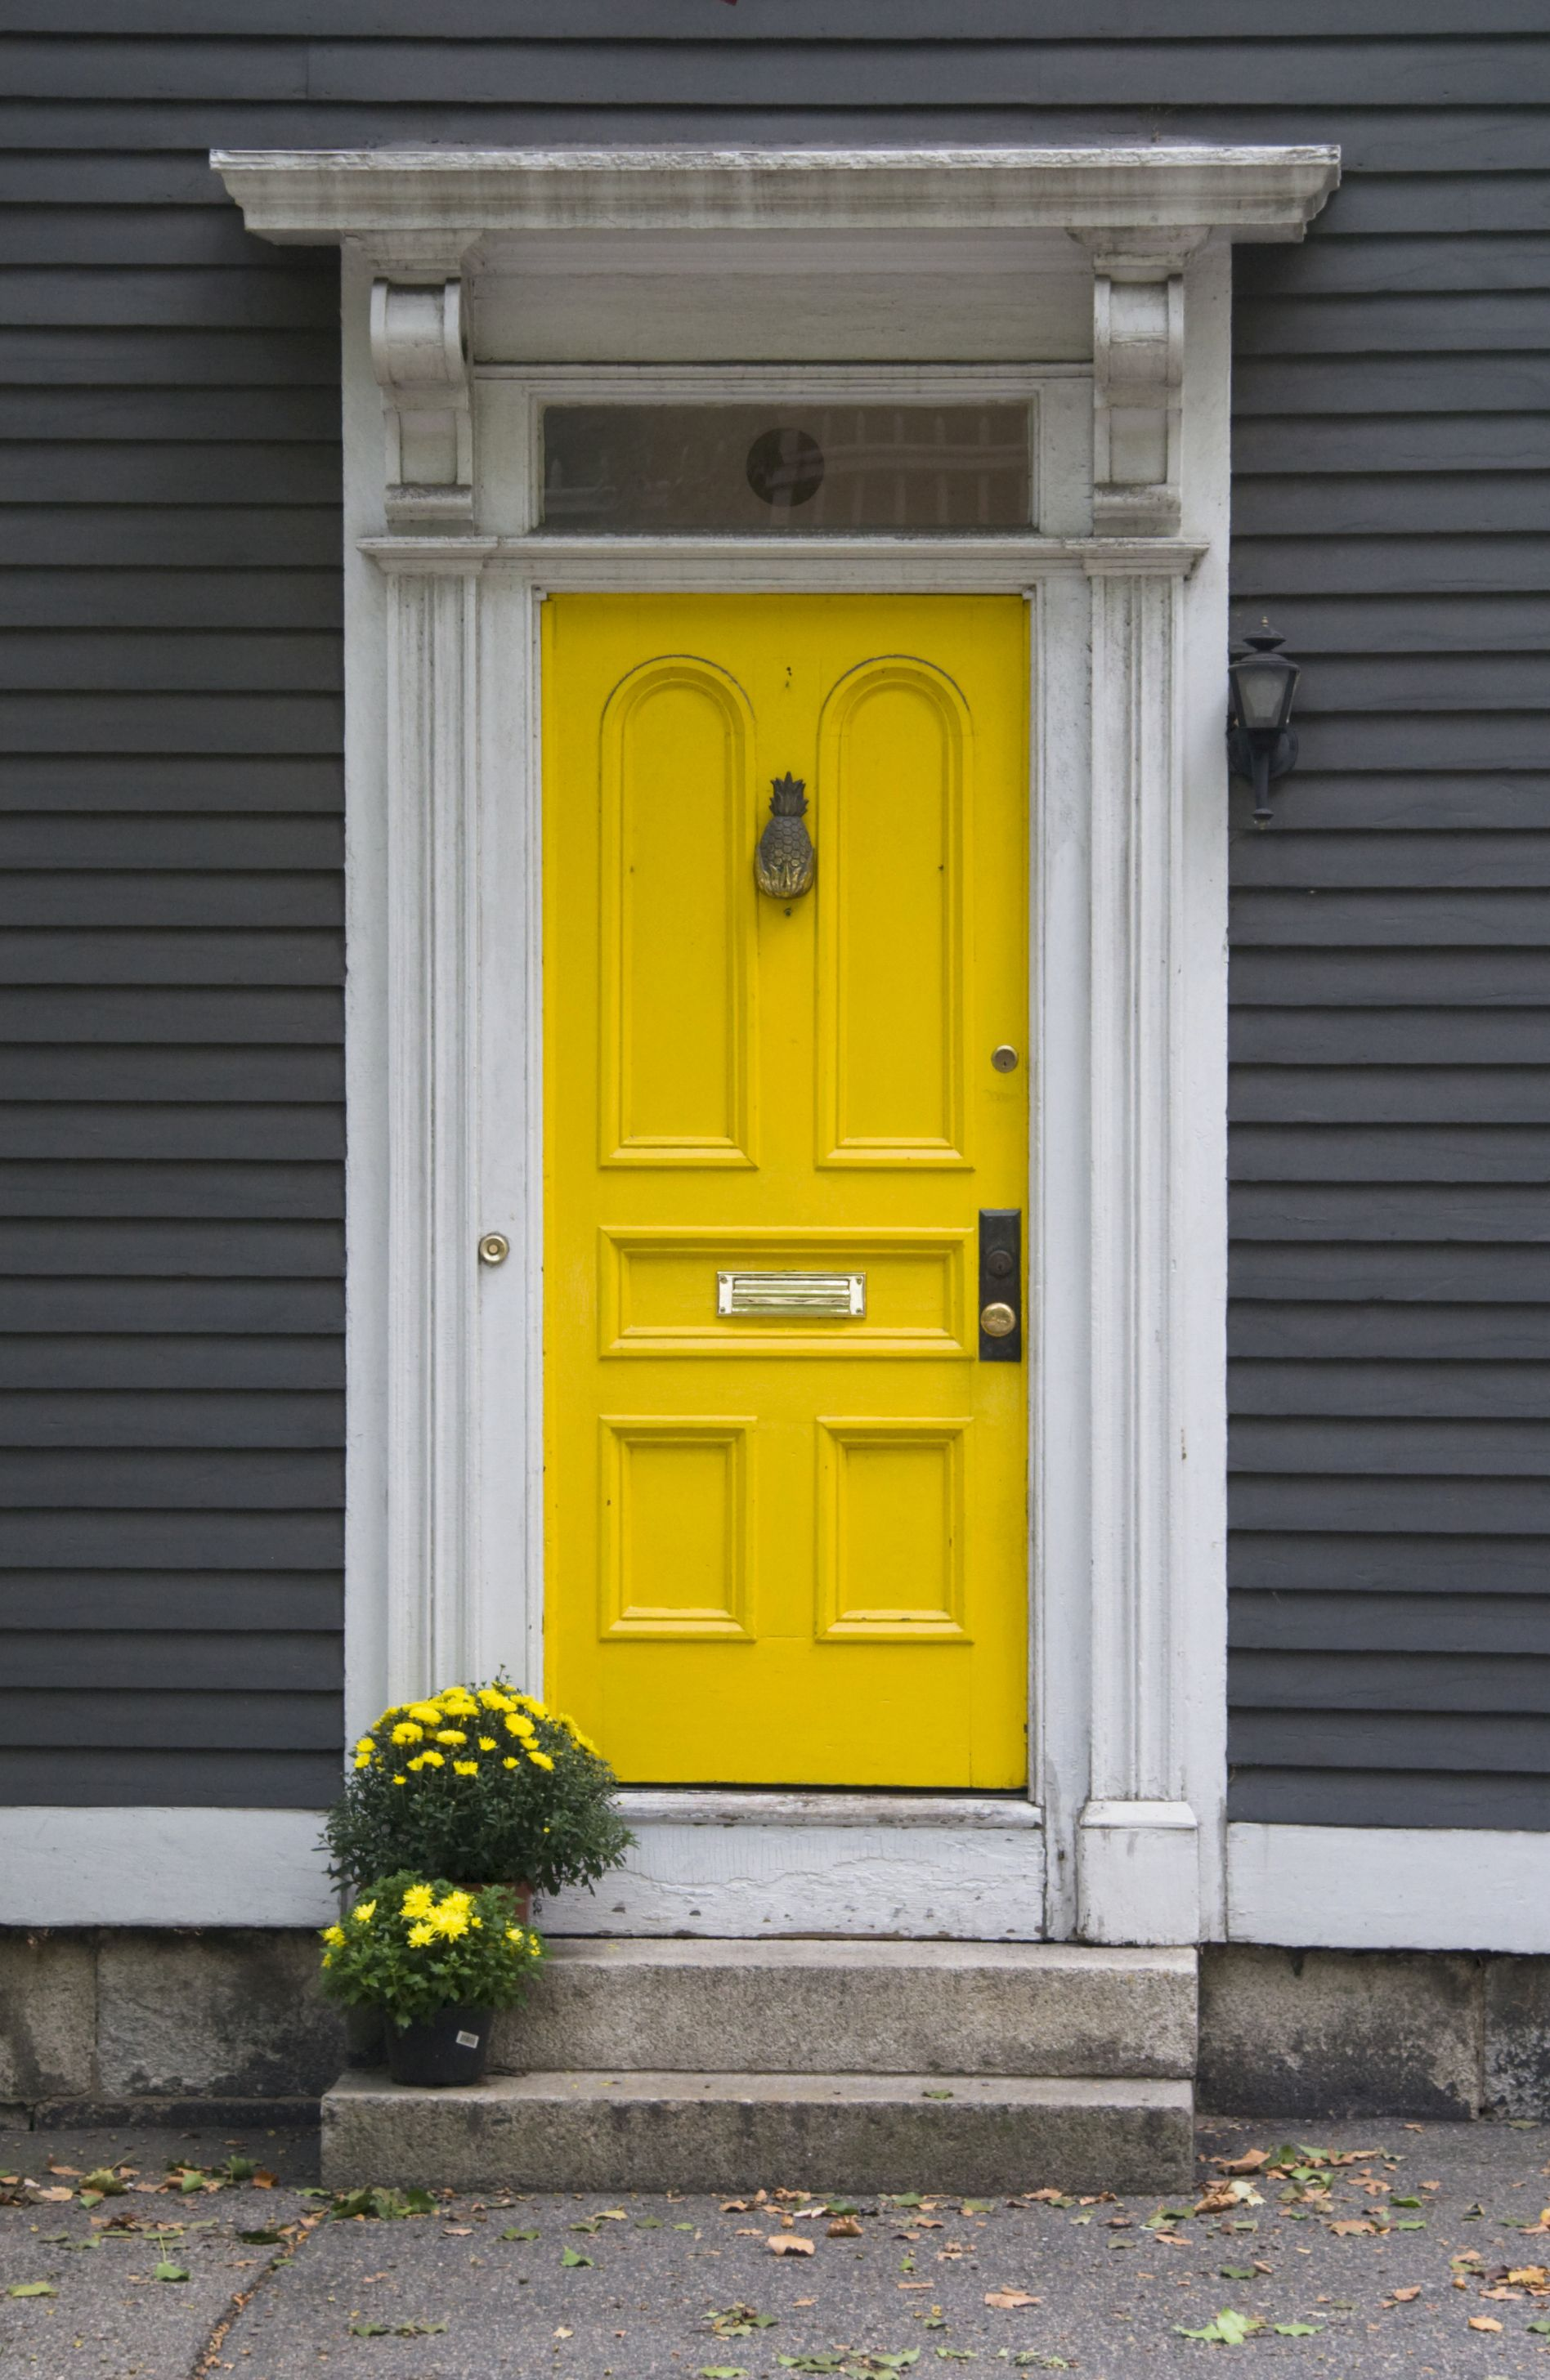 Seriously Considering This Color Combination Yellow Door And Gray Exterior With White Trim